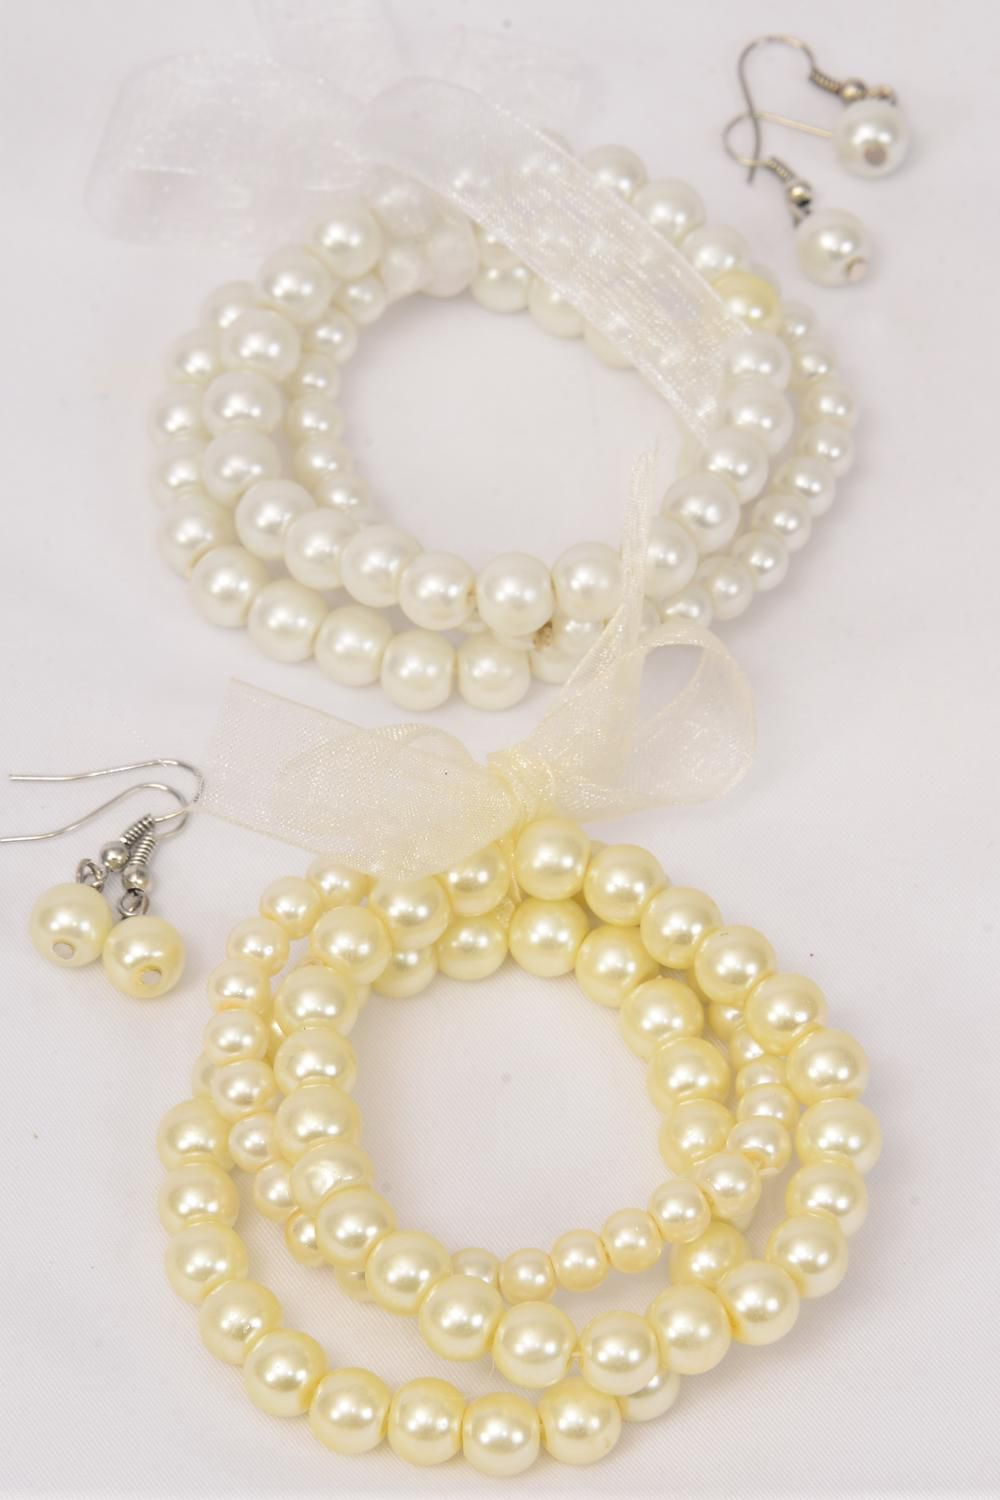 Bracelet & Earring Sets Ribbon 3 string Glass Pearls Cream & White Mix/DZ **Stretch** 8 mm & 10 mm Glass Pearls Mix,6 White,6 Cream Mix,Hang Tag & Opp Bag & UPC Code -